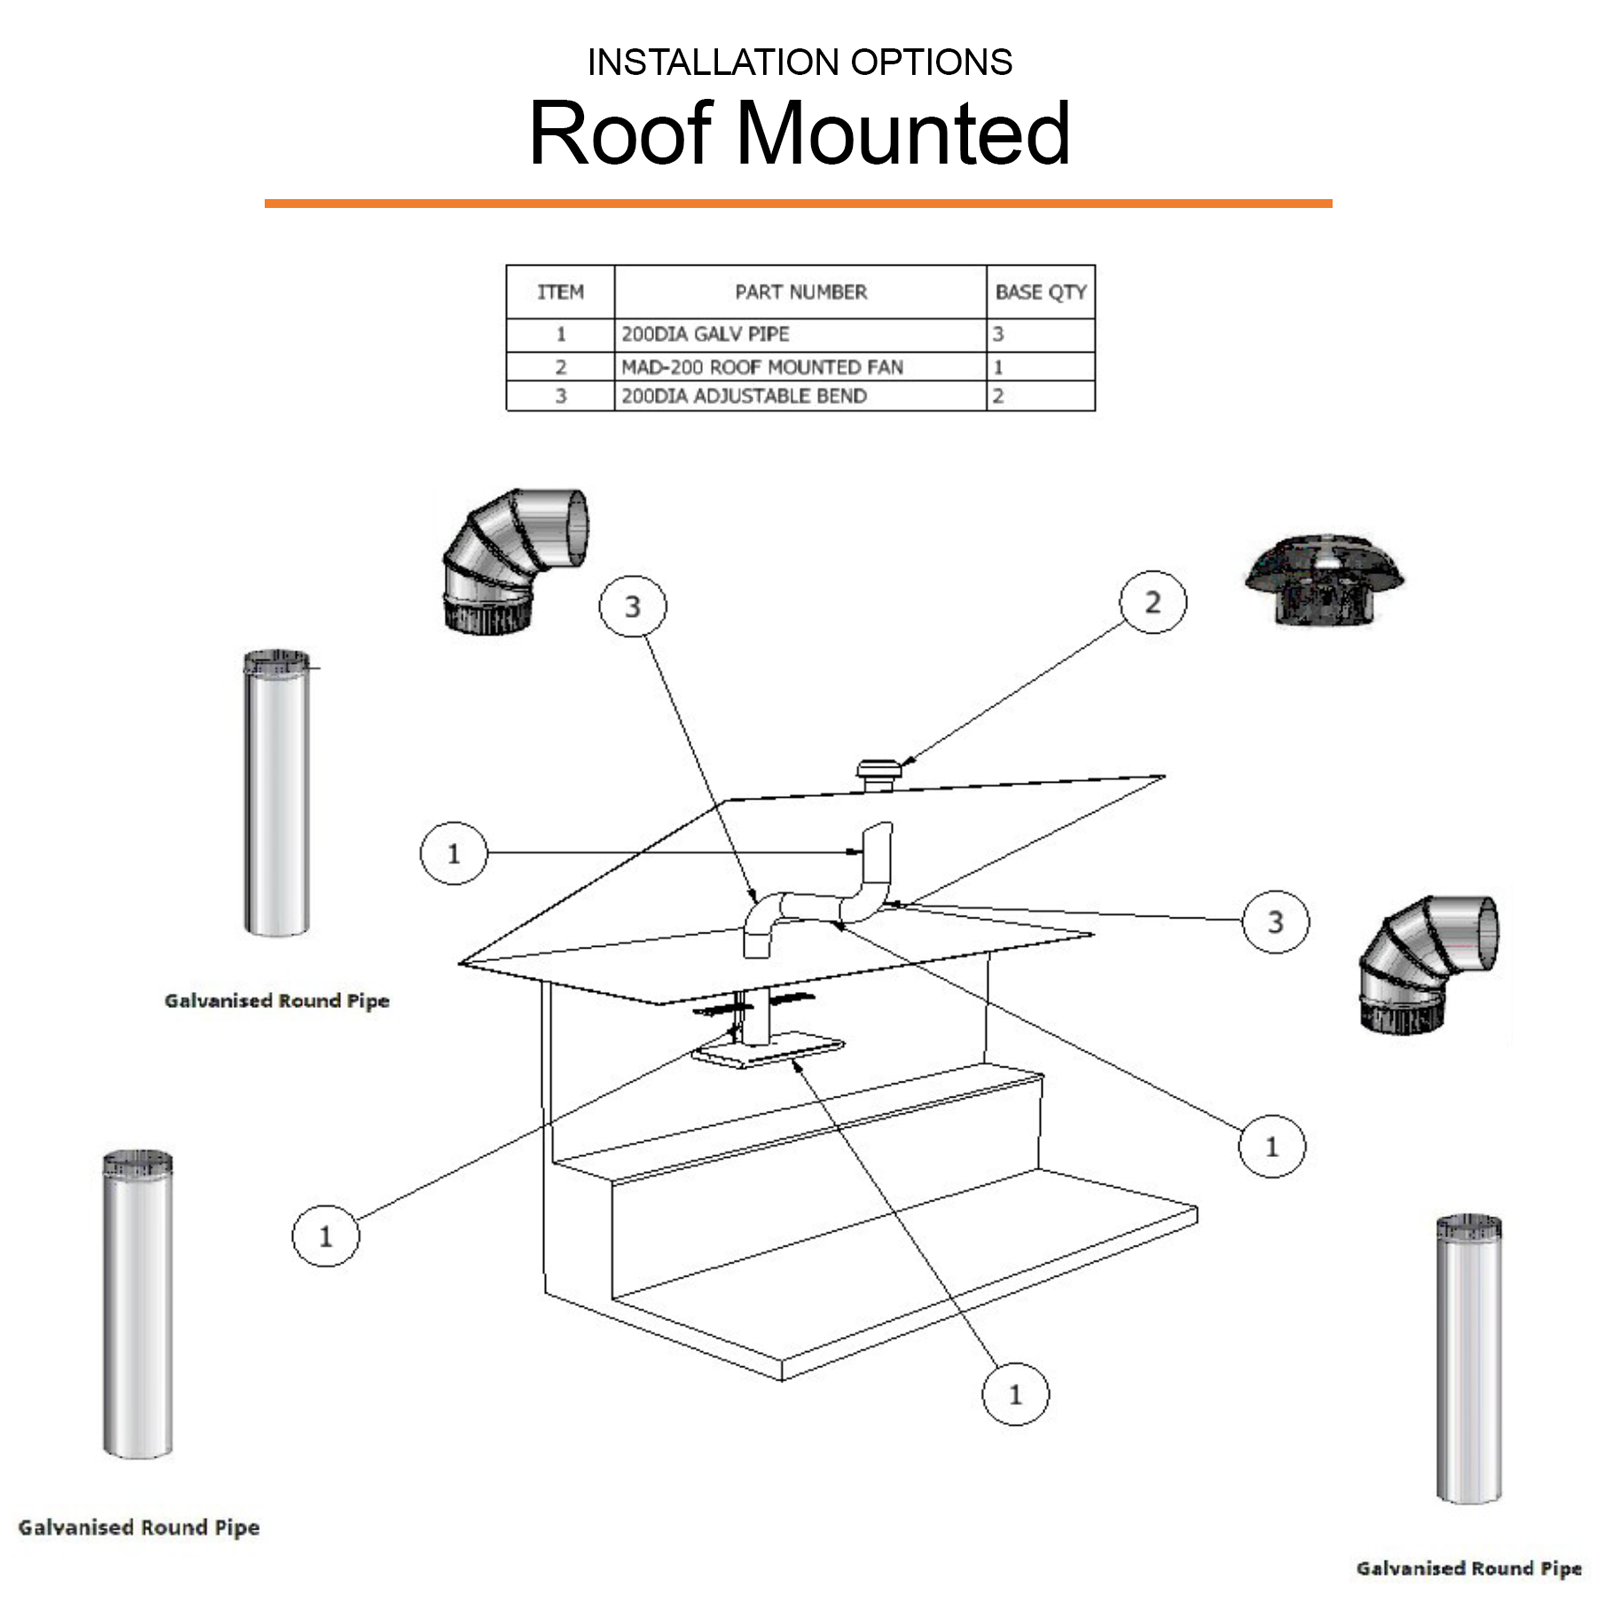 Range hood installation ducting options - roof mounted